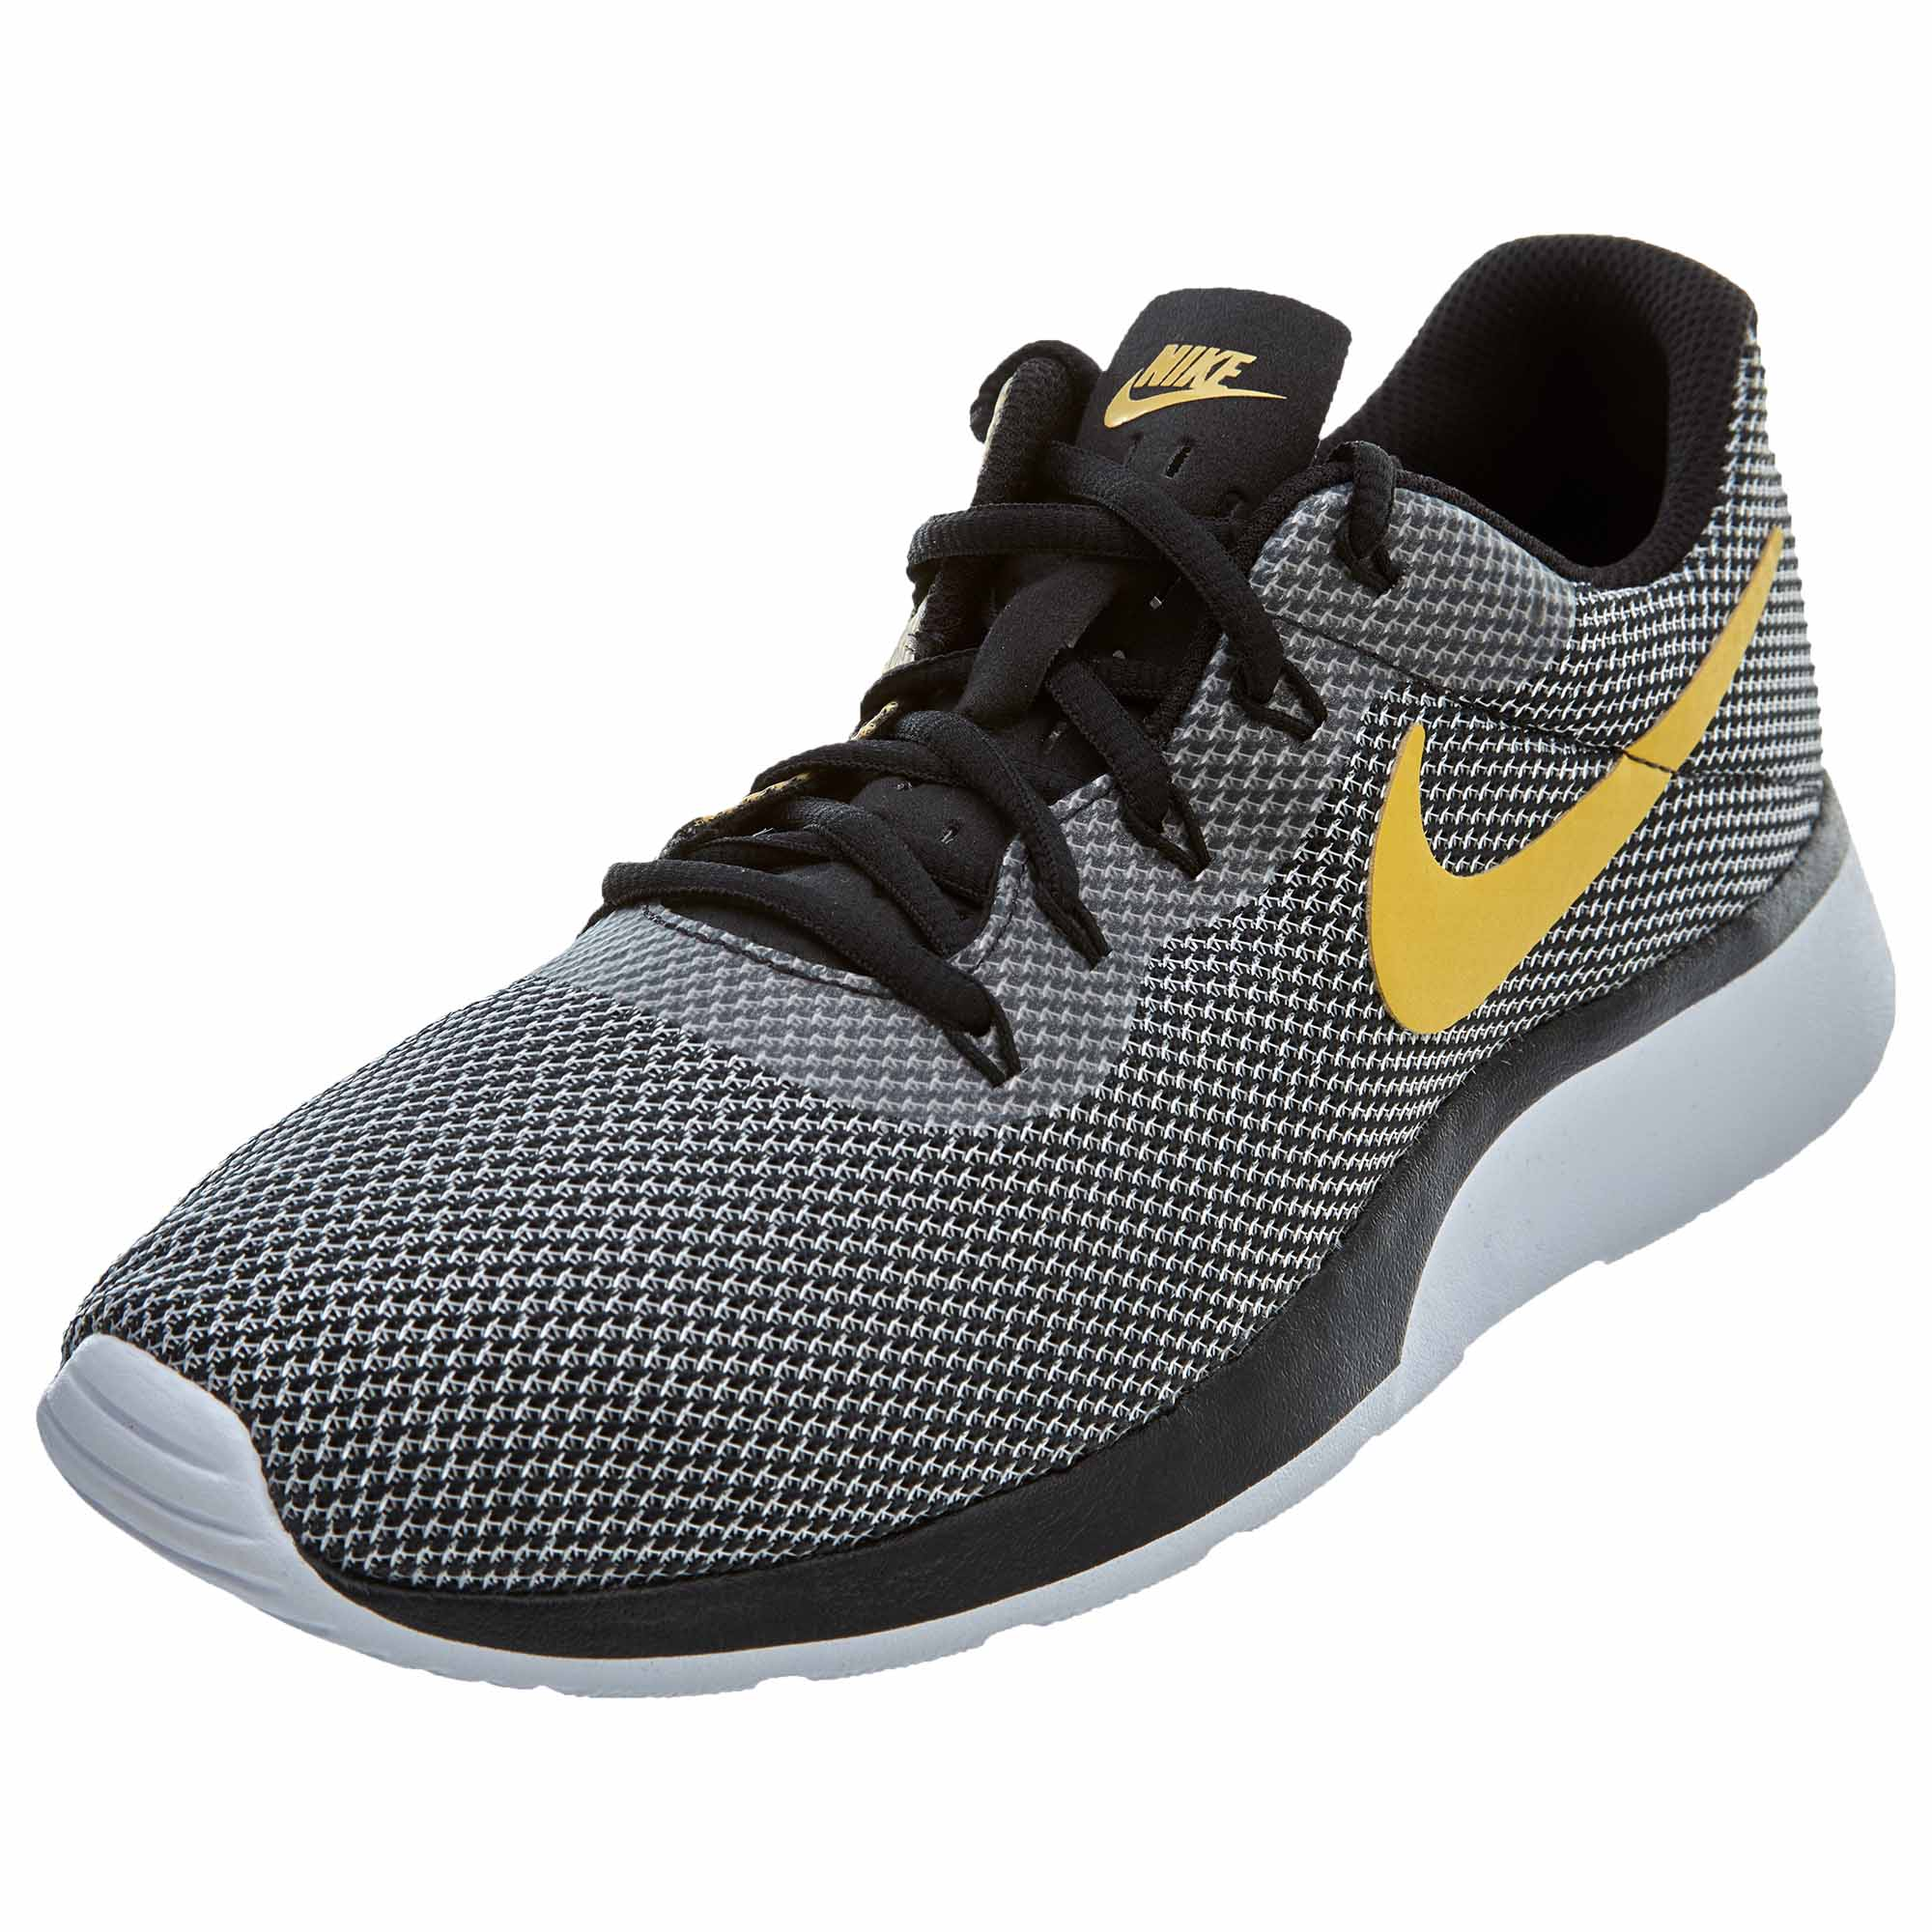 Nike Tanjun Racer Mens Style : 921669 009 – TheEagleShoes